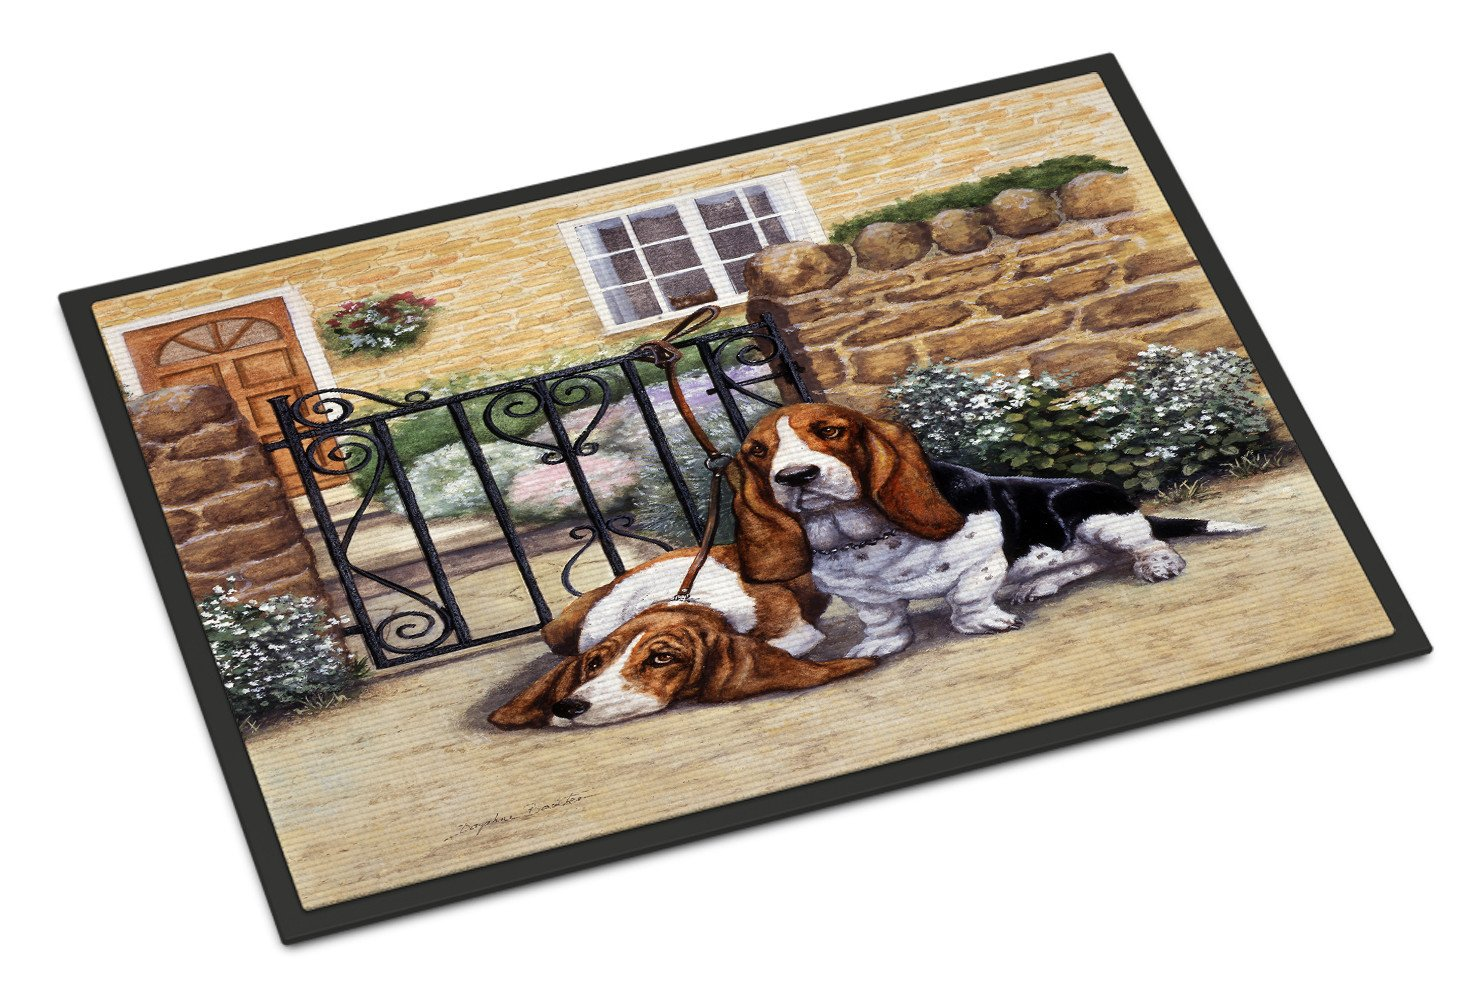 Basset Hound at the gate Indoor or Outdoor Mat 18x27 BDBA0312MAT - the-store.com